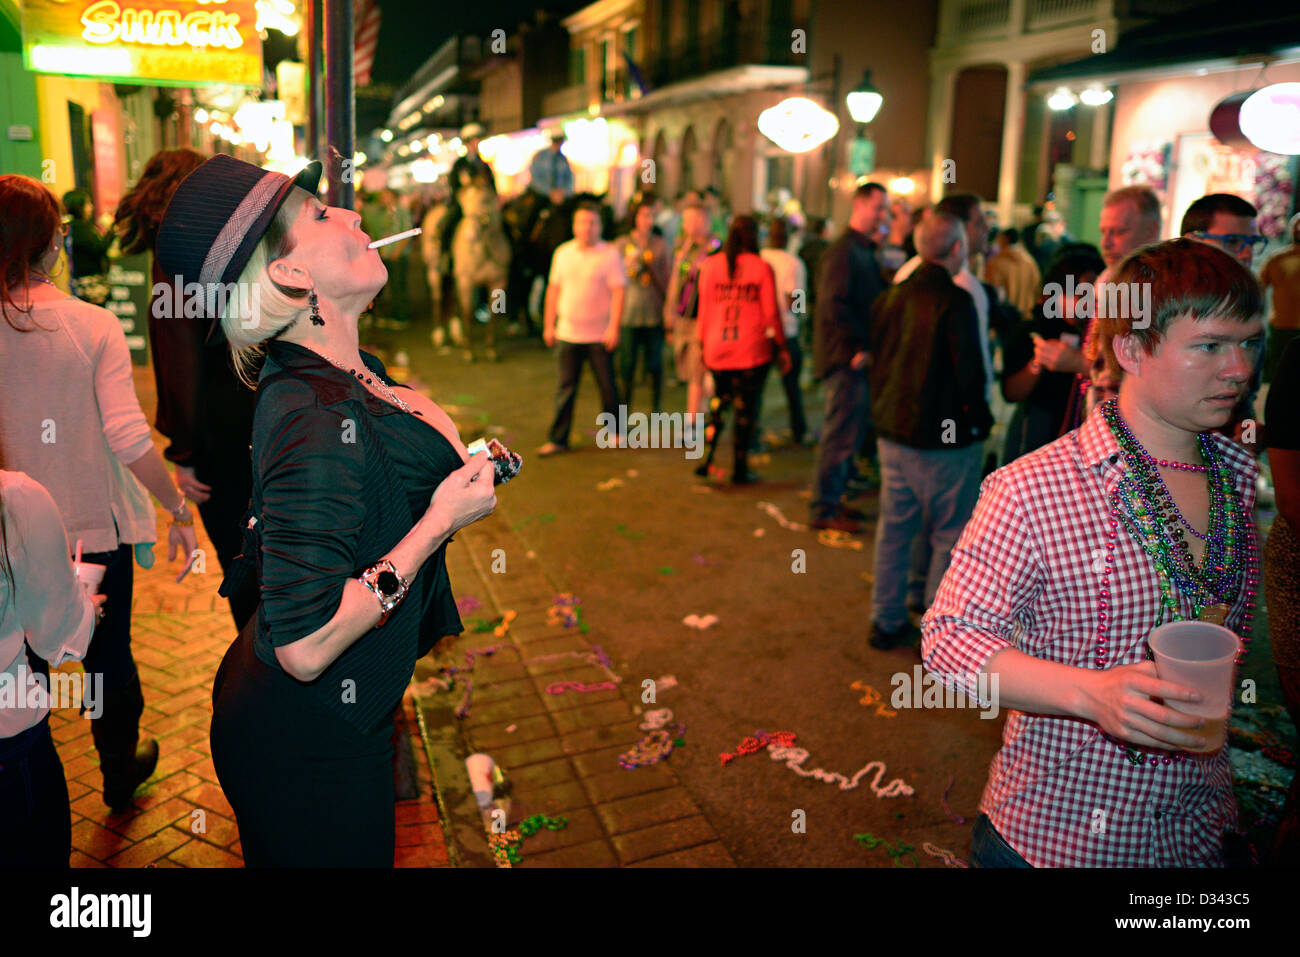 Woman Flashing Bourbon Street Mardi Gras New Orleans Stock